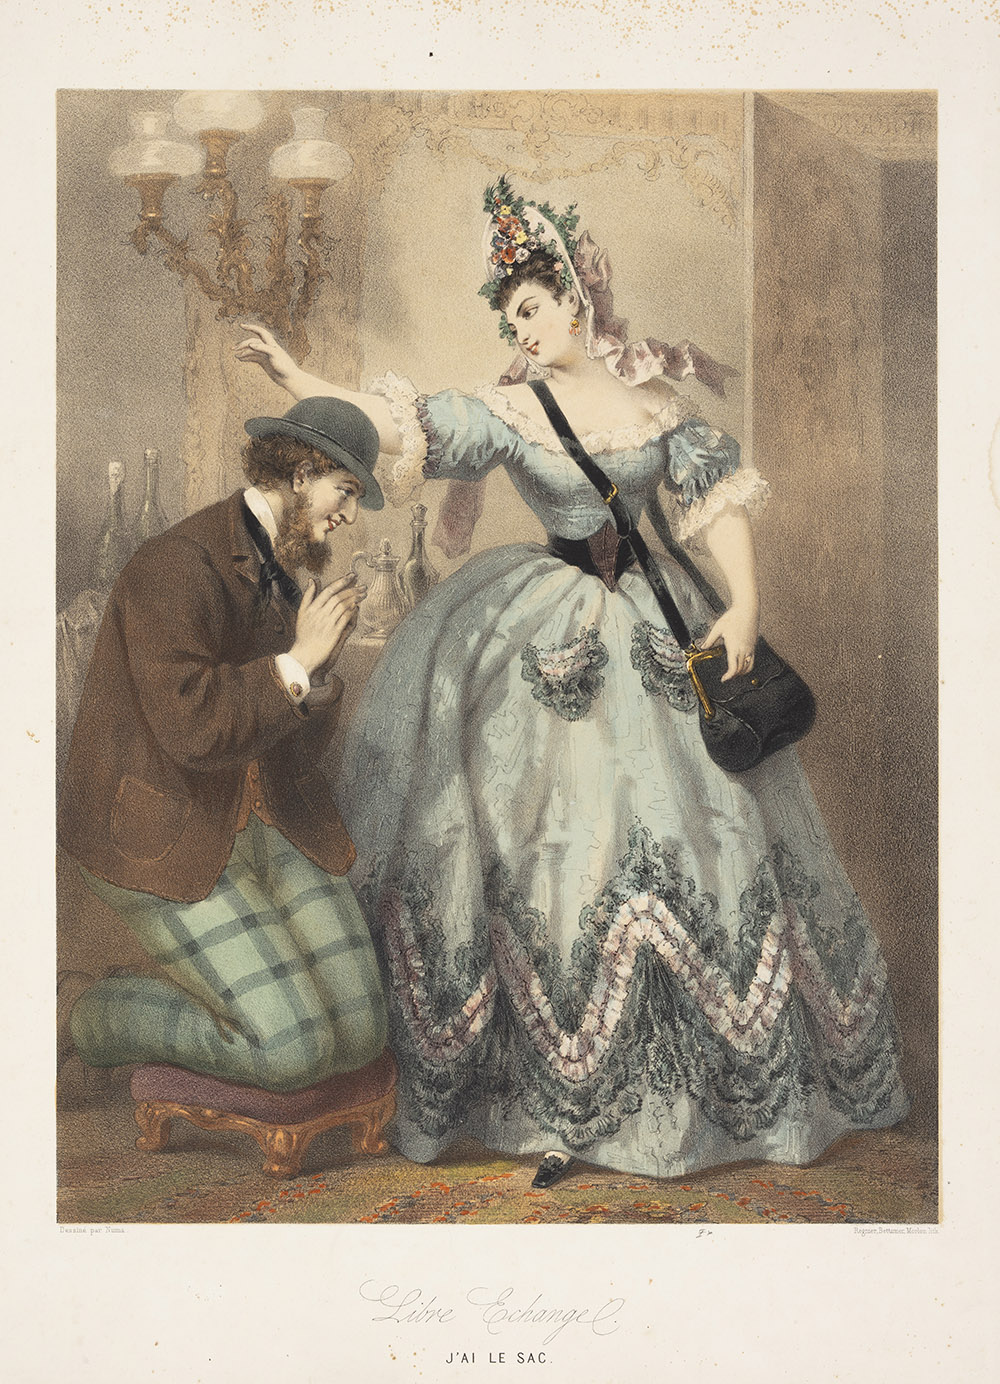 Pierre Numa Bassaget. <em>Libre Exchange. J'ai Le Sac (A Fair Exchange. I Have the Purse.),</em> c. 1864. Color lithograph.